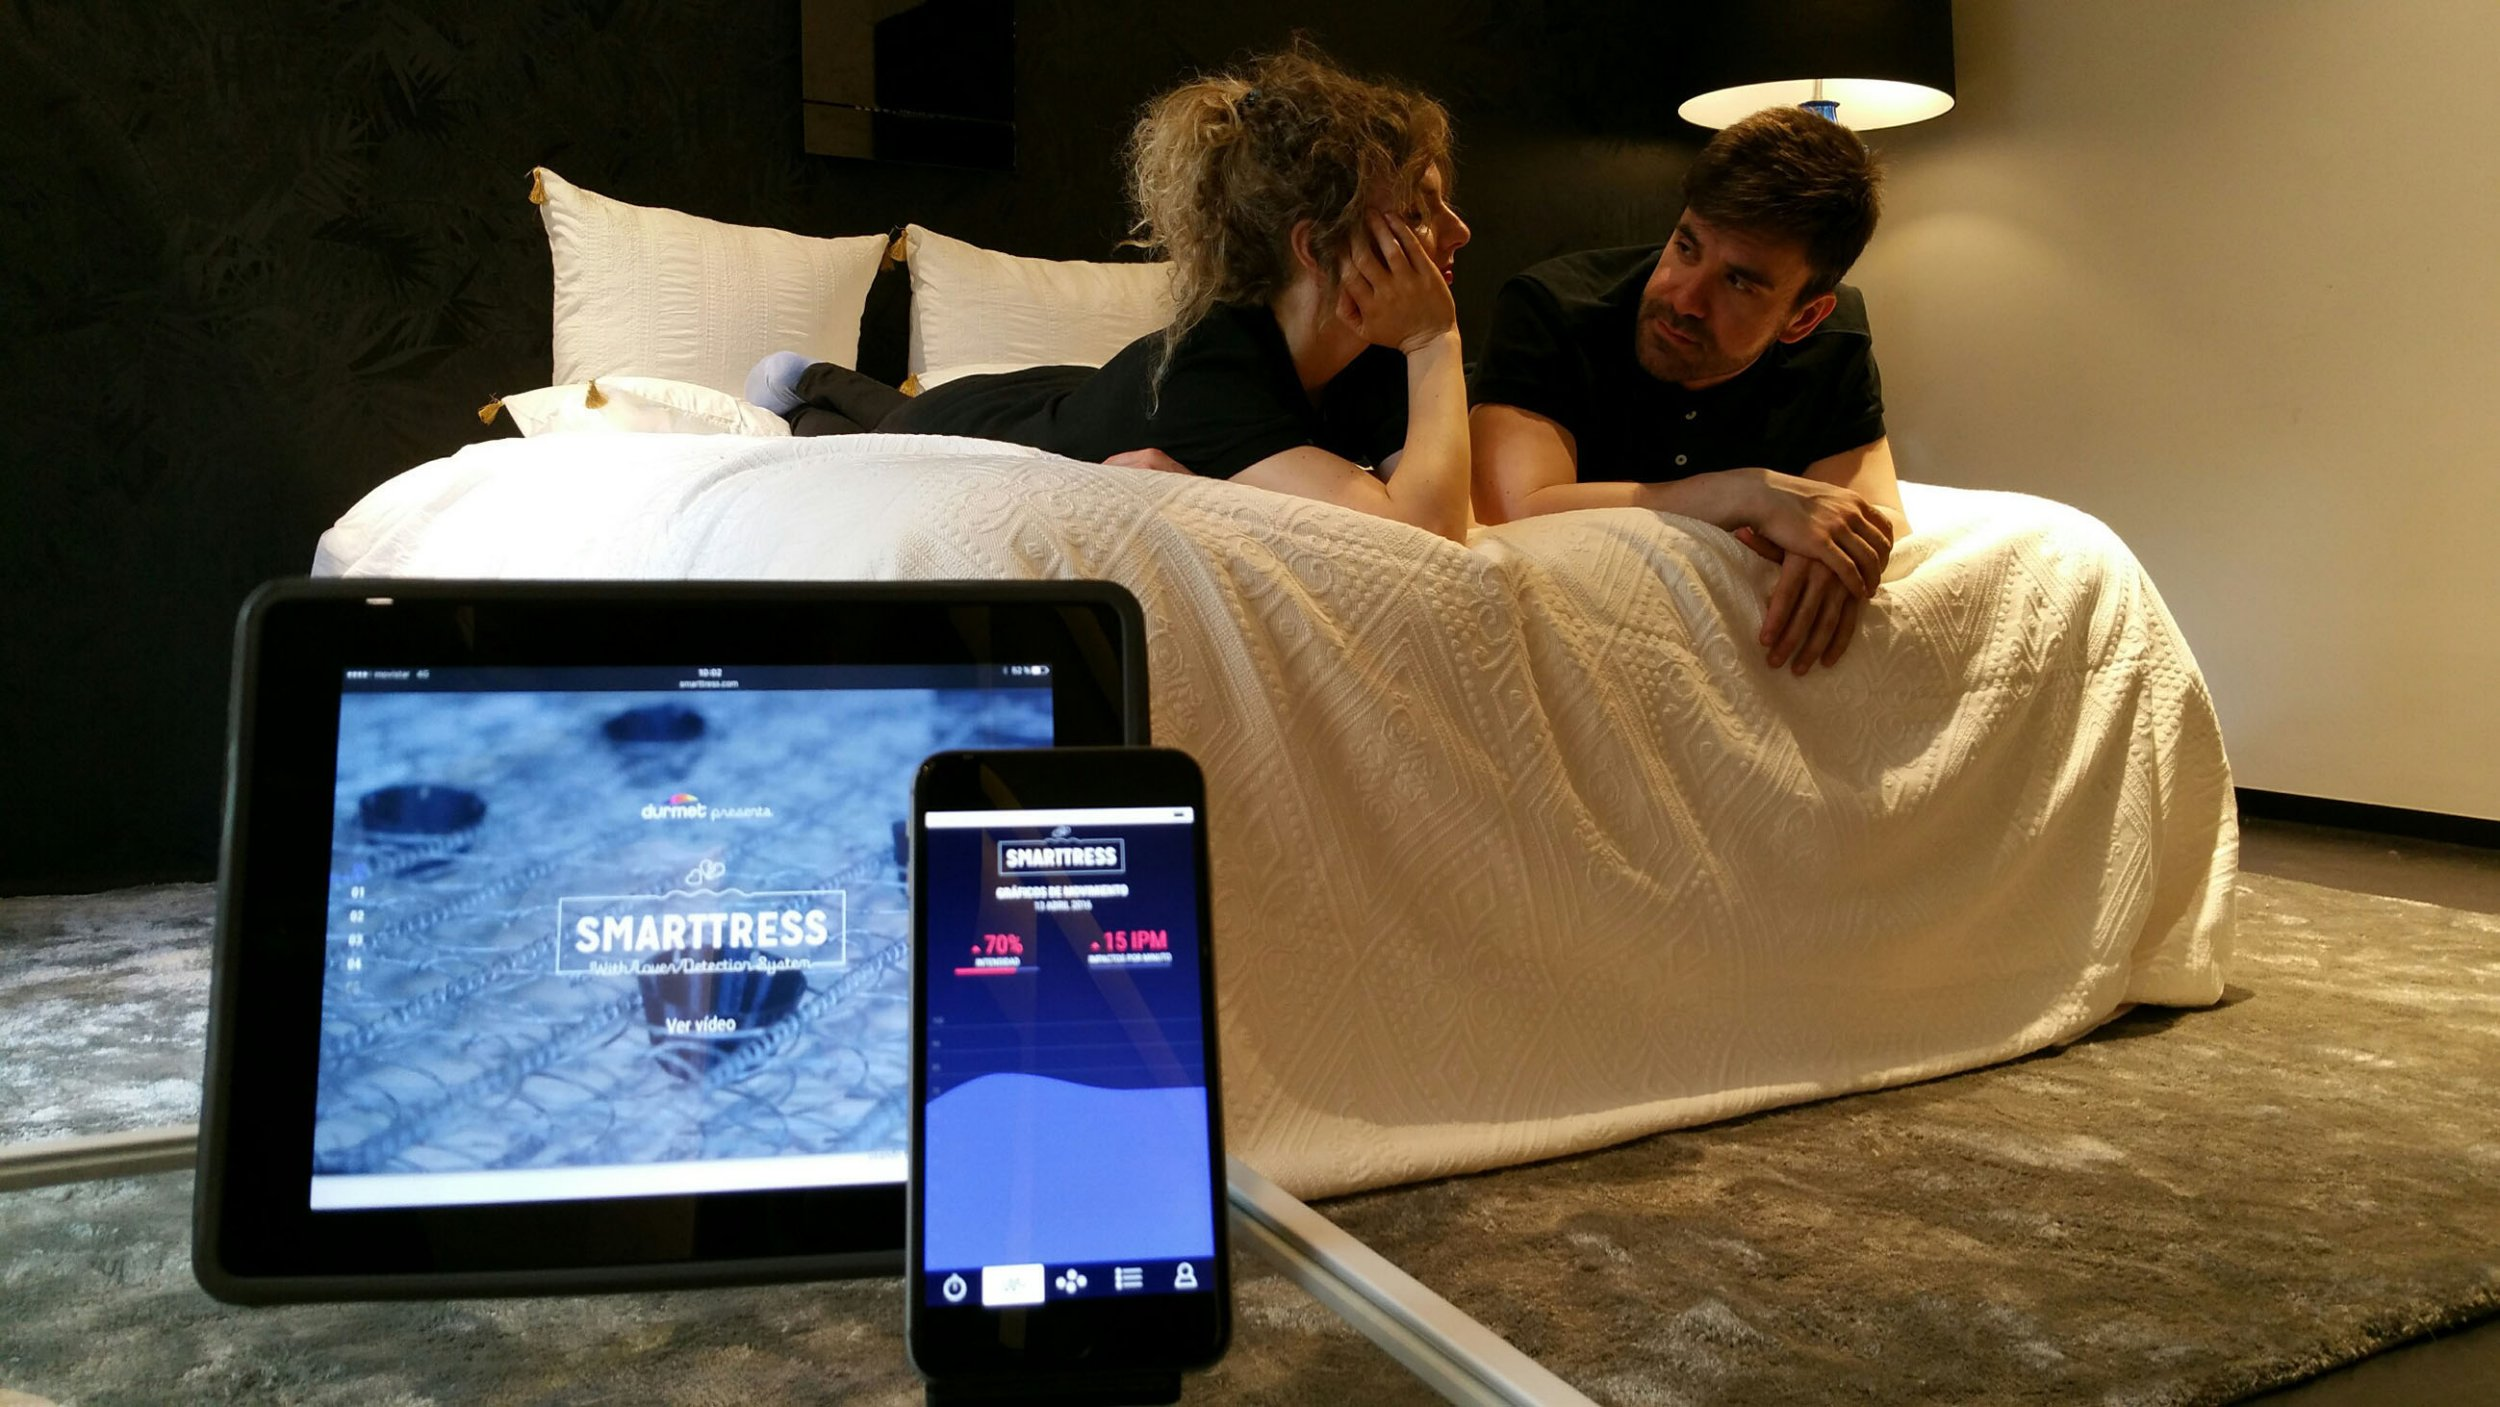 Is there really a mattress that tells you your partner is cheating?